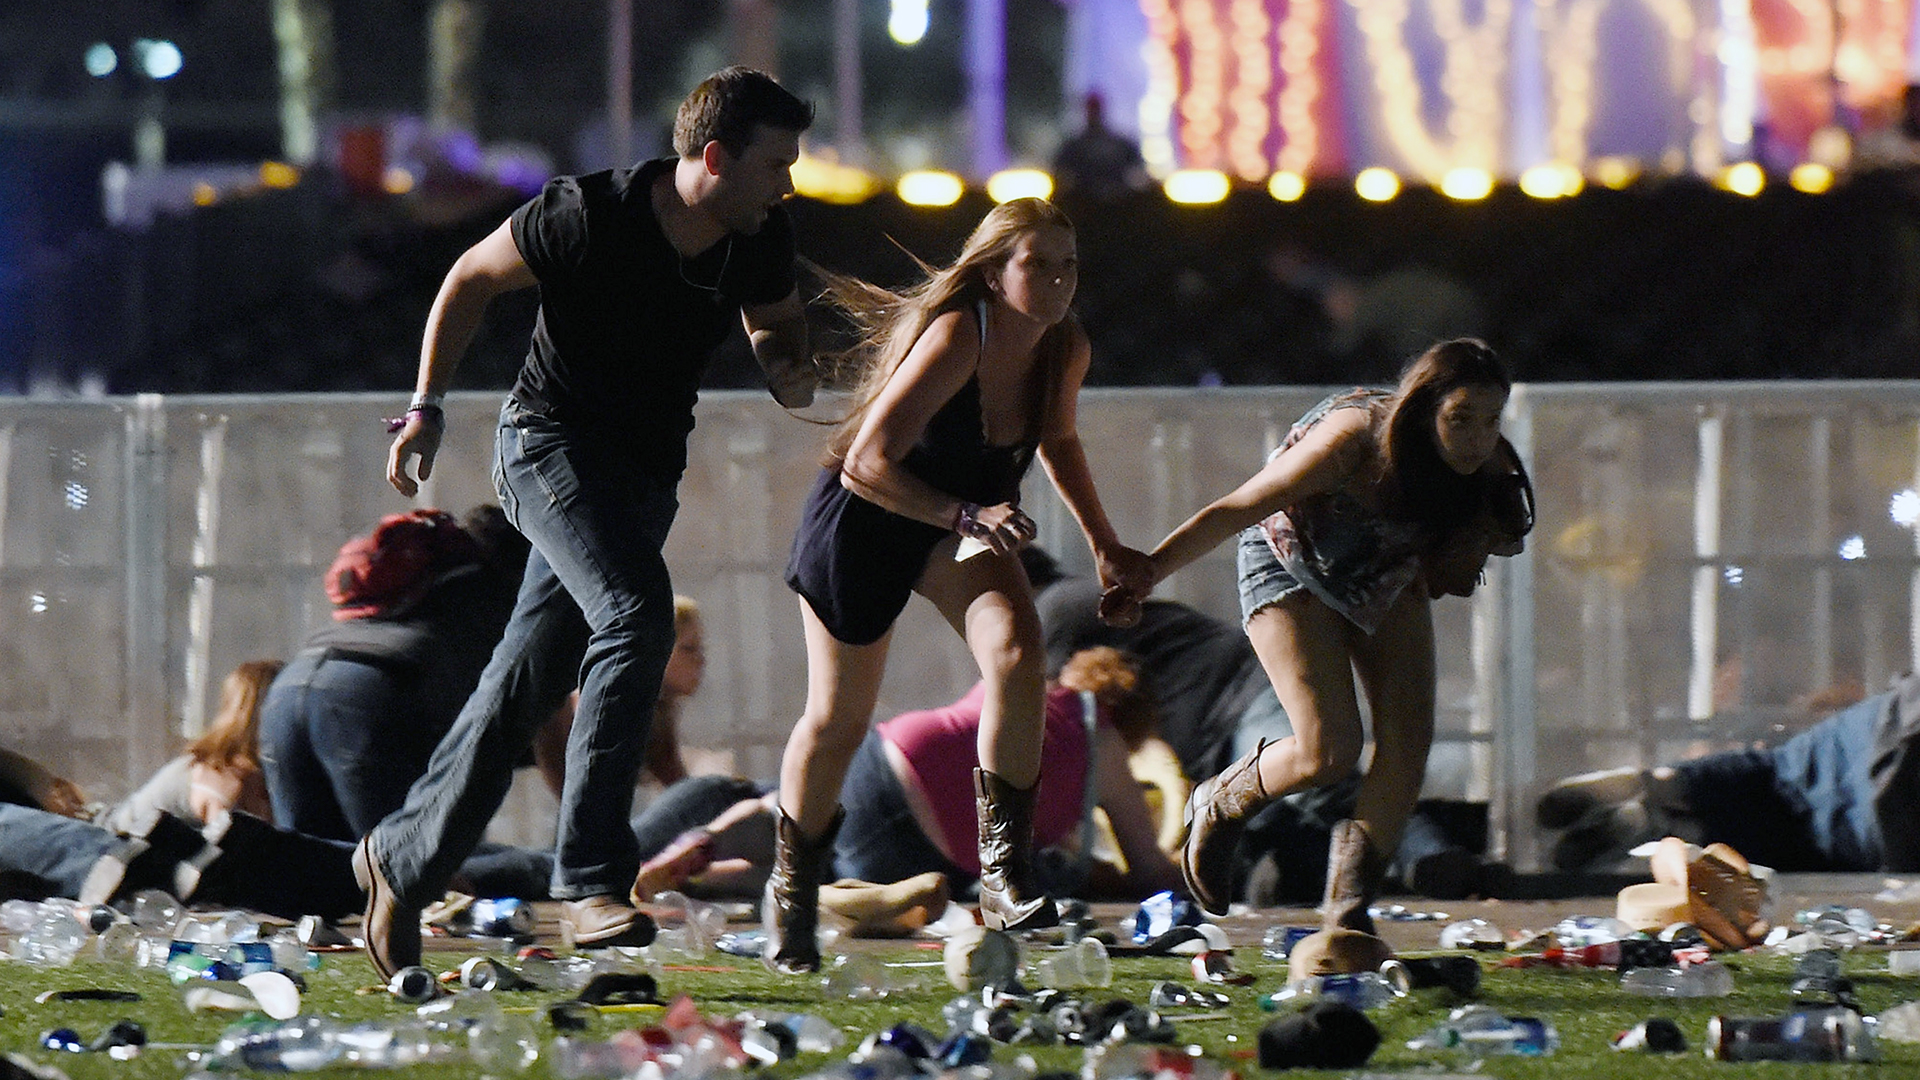 Las Vegas Mass Shooting running for cover-159532.jpg03884020